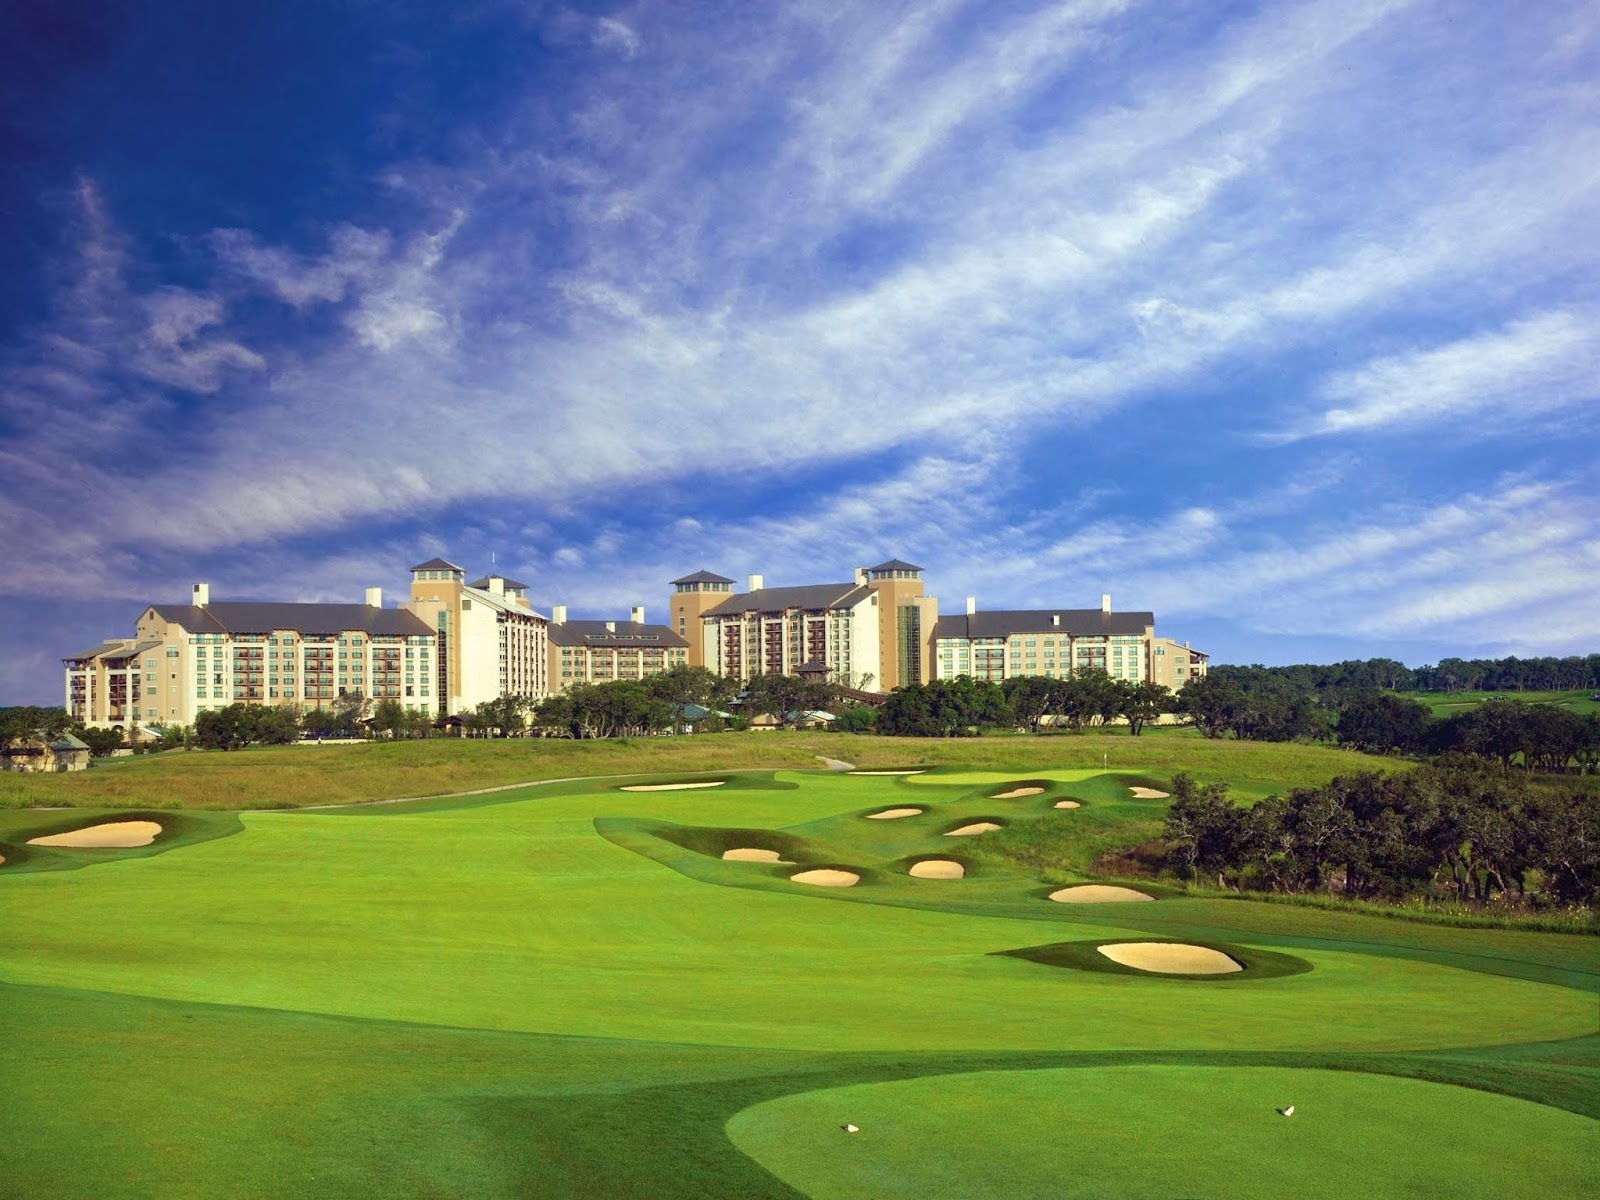 Jwmarriott San Antonio Hill Country Resort Amp Spa And Tpc